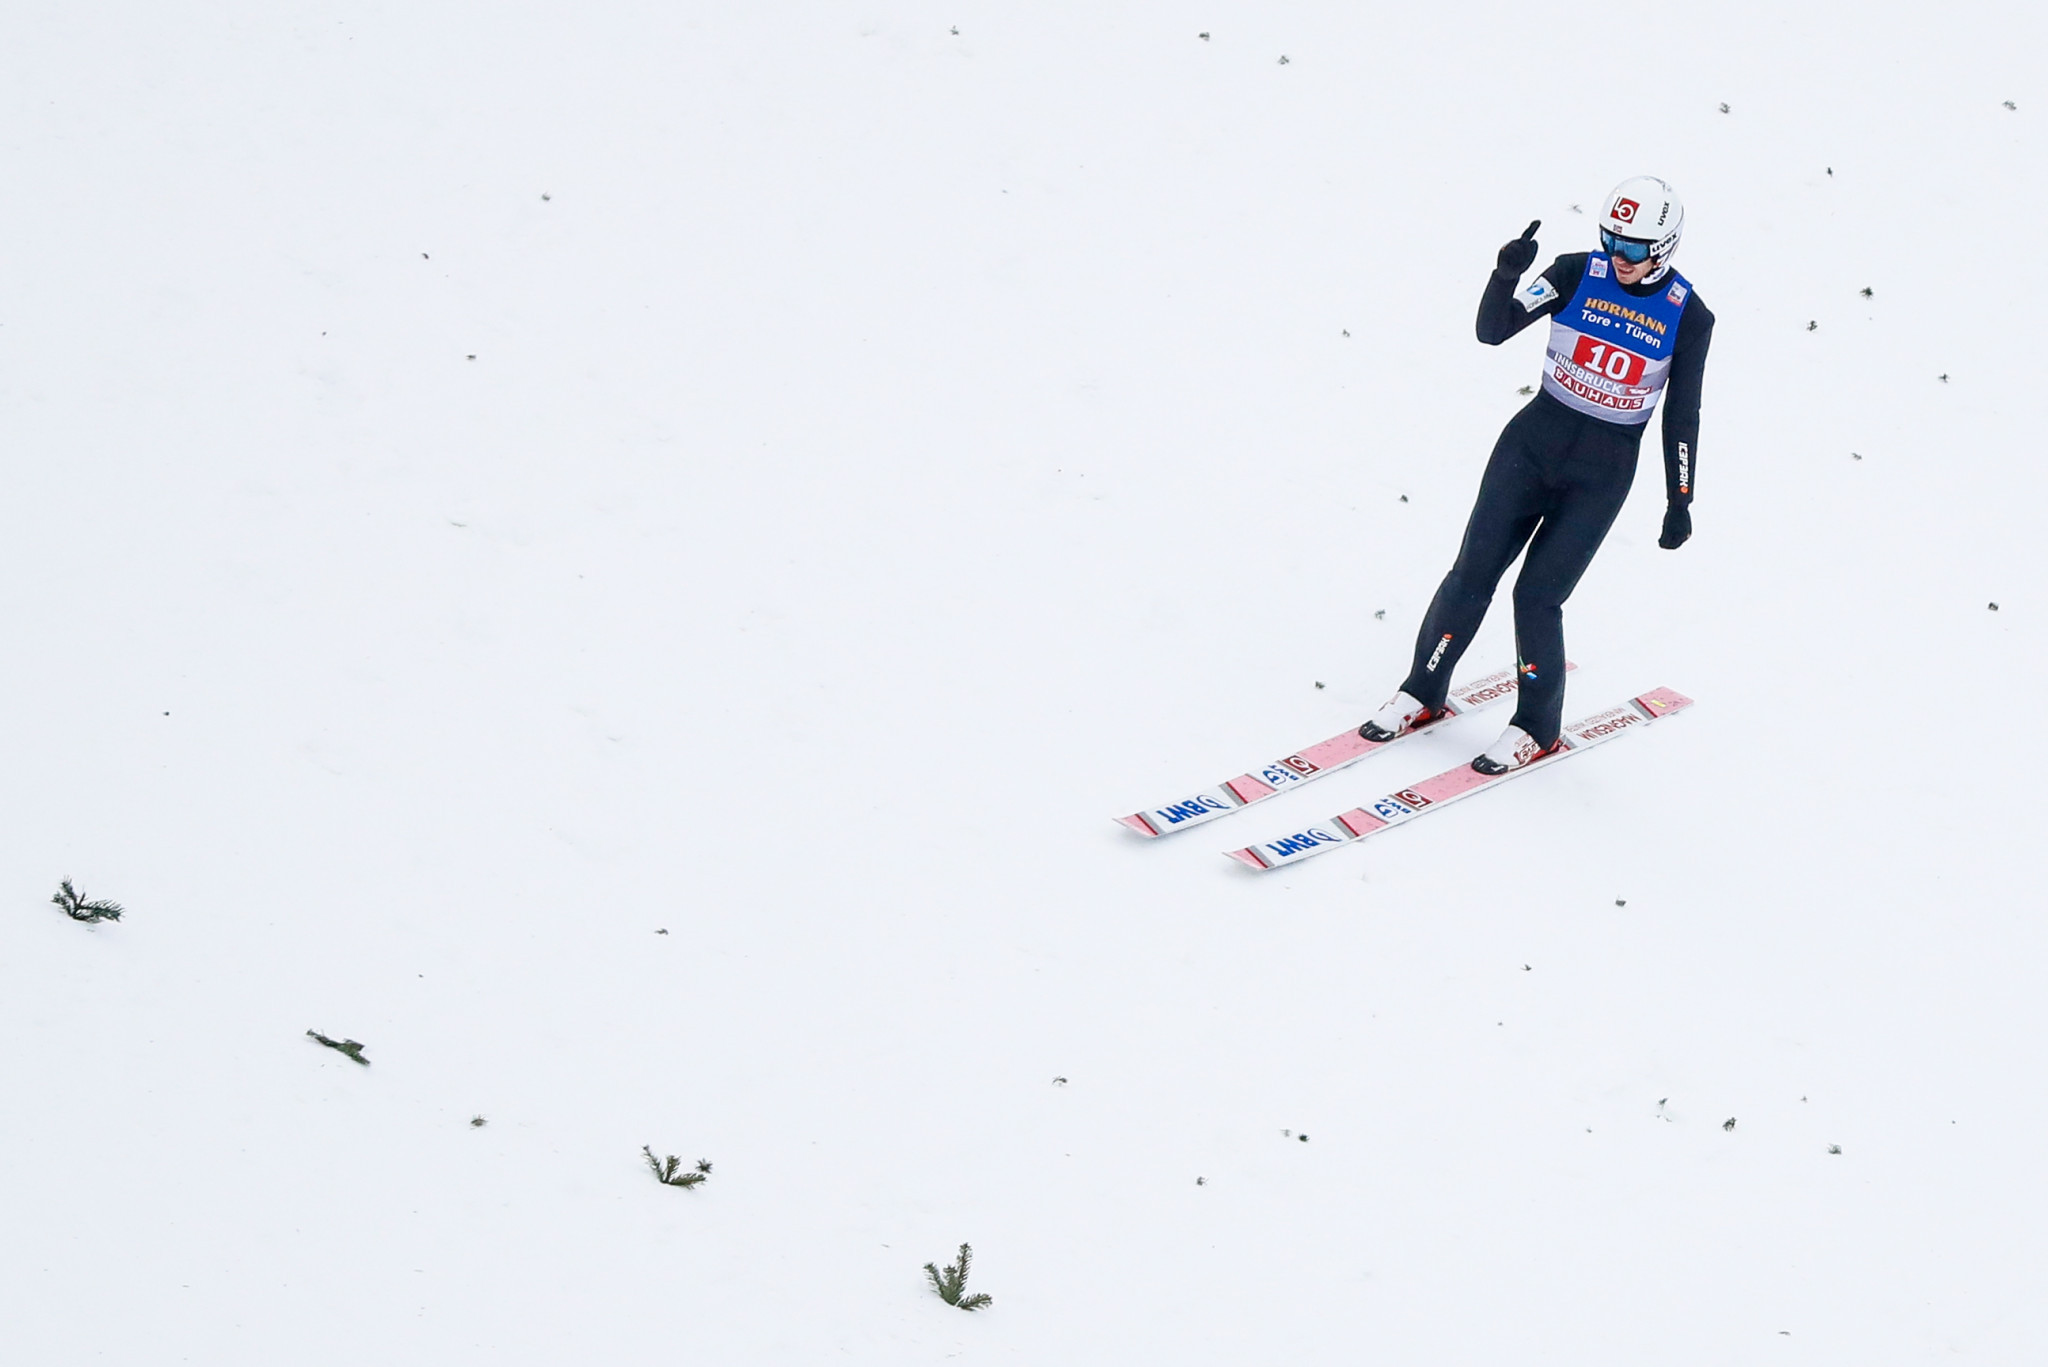 Andreas Stjernen will also miss out after falling at the last World Cup event in Lahti ©Getty Images